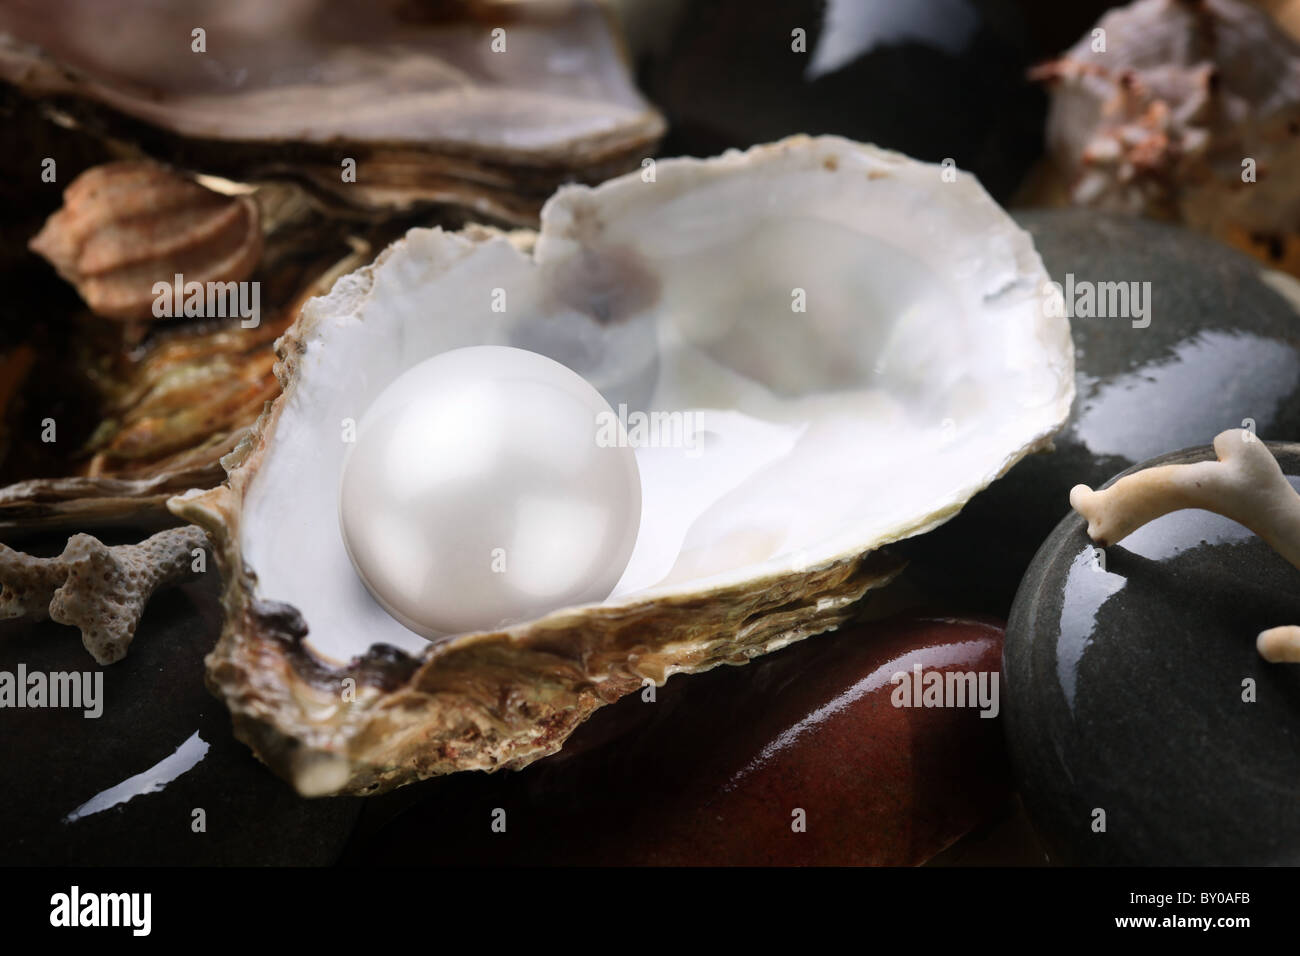 Image of a white pearl in the shell on wet pebbles. - Stock Image